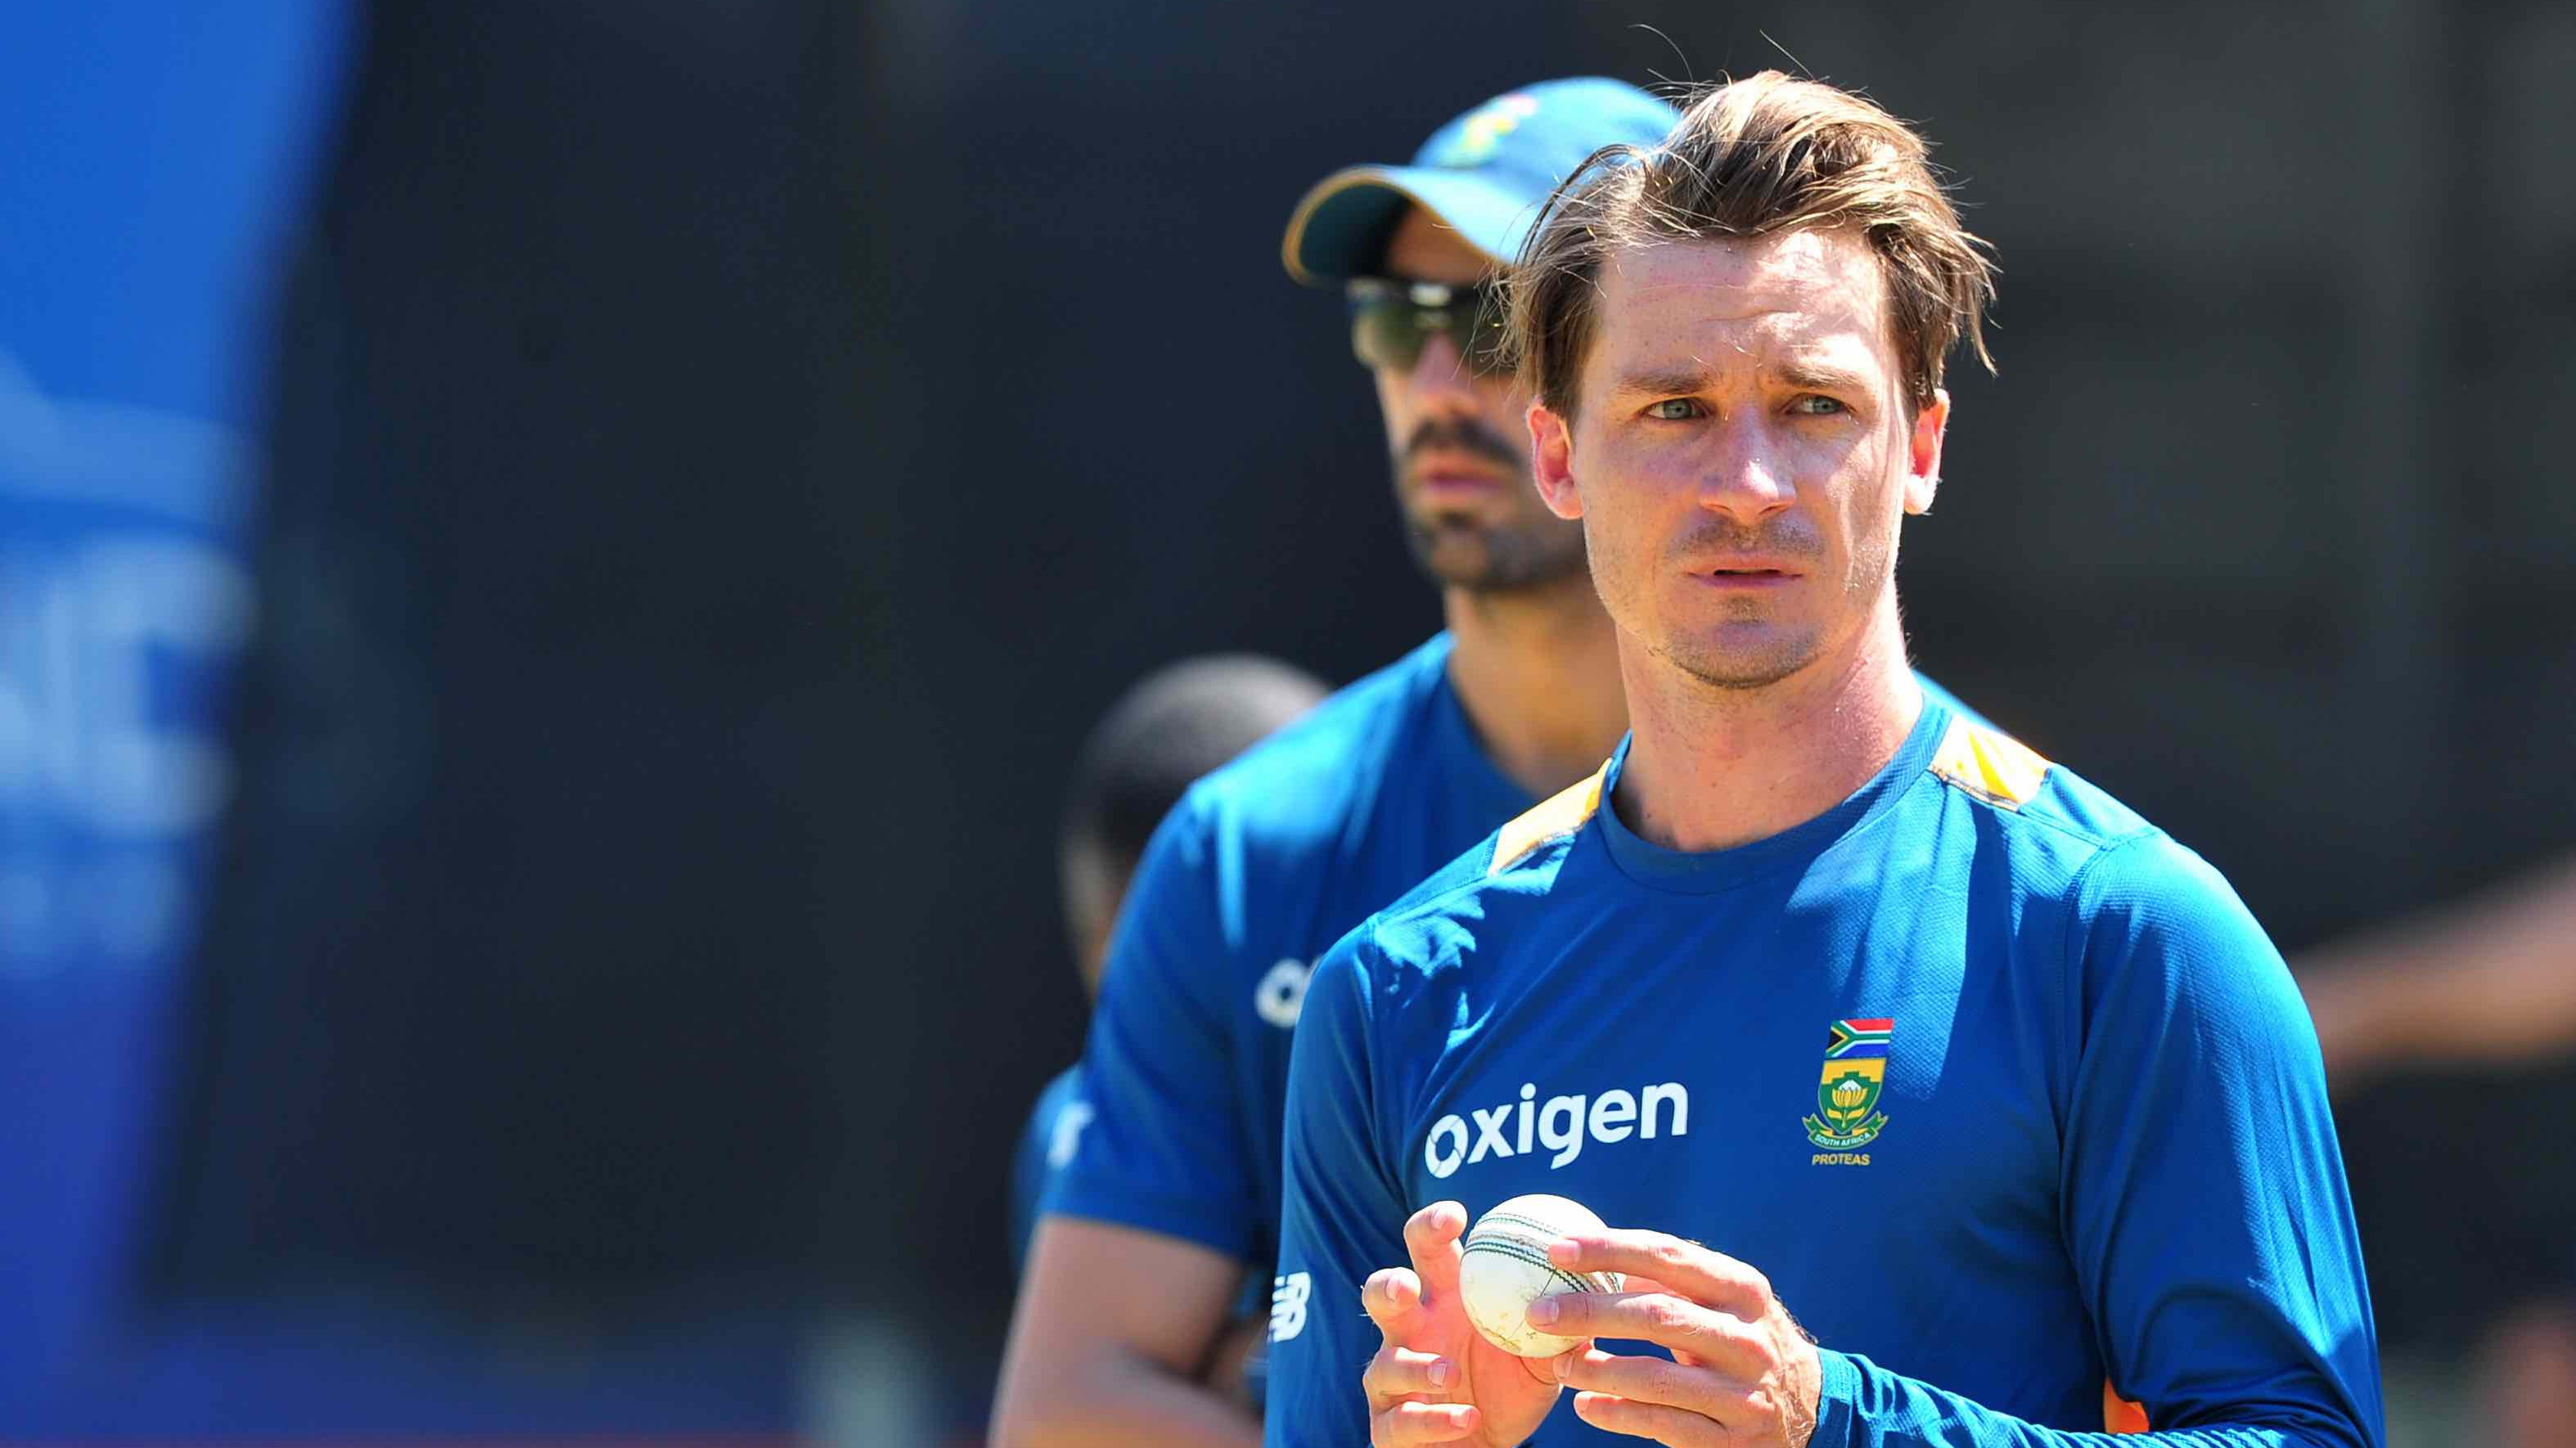 Dale Steyn makes a nightmarish return to competitive cricket